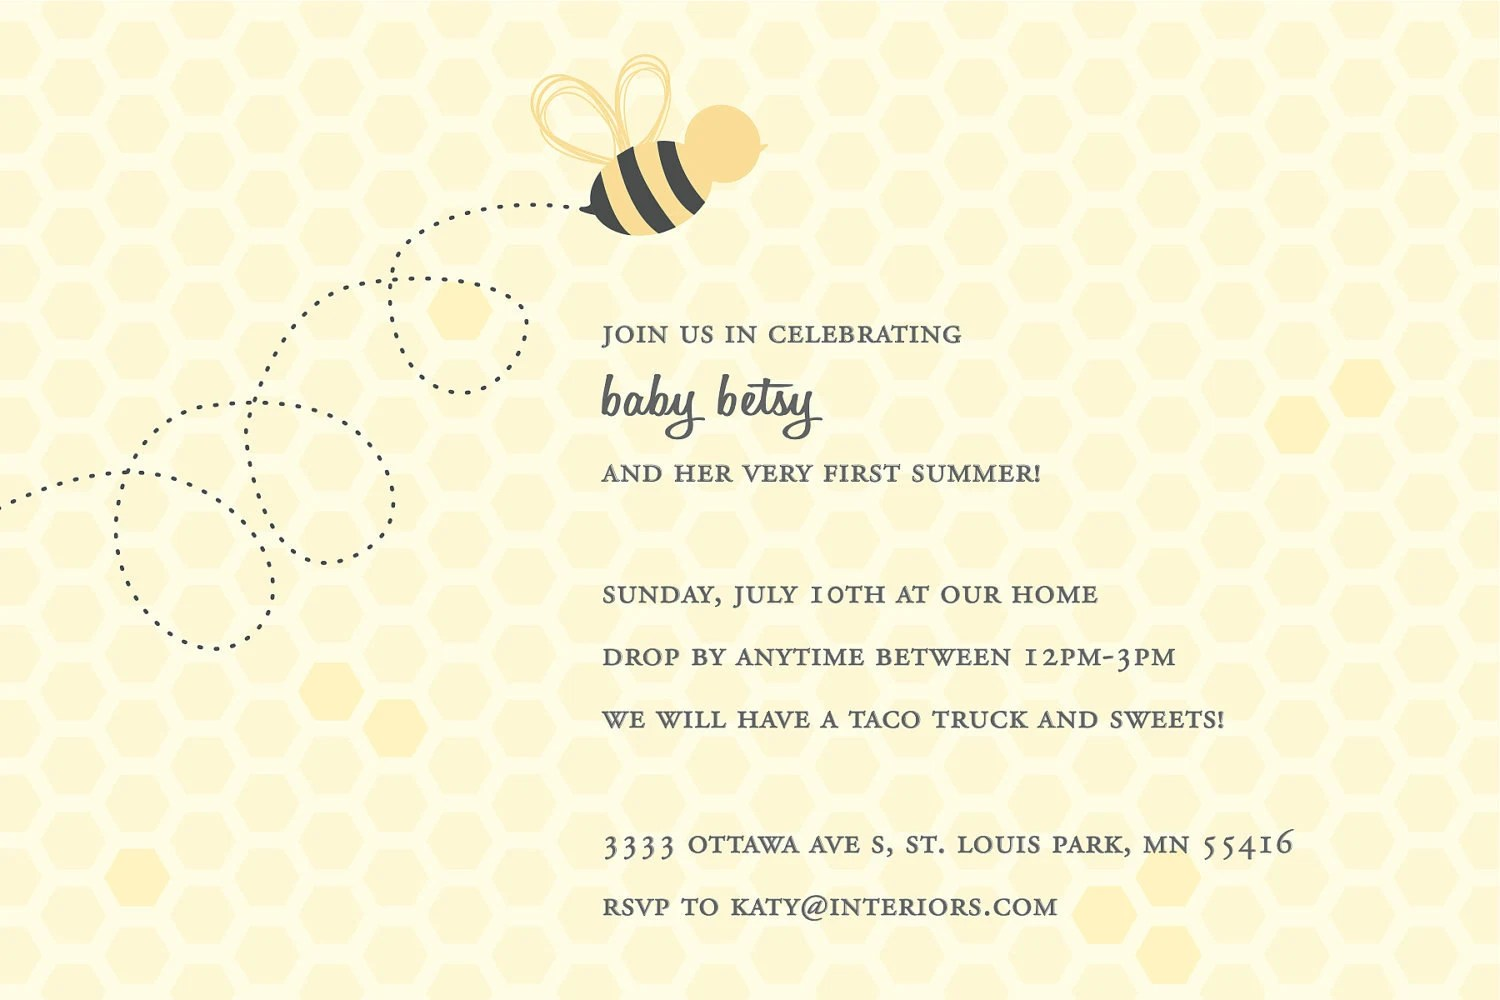 Wedding Invitation Wording Wedding Invitation Wording And